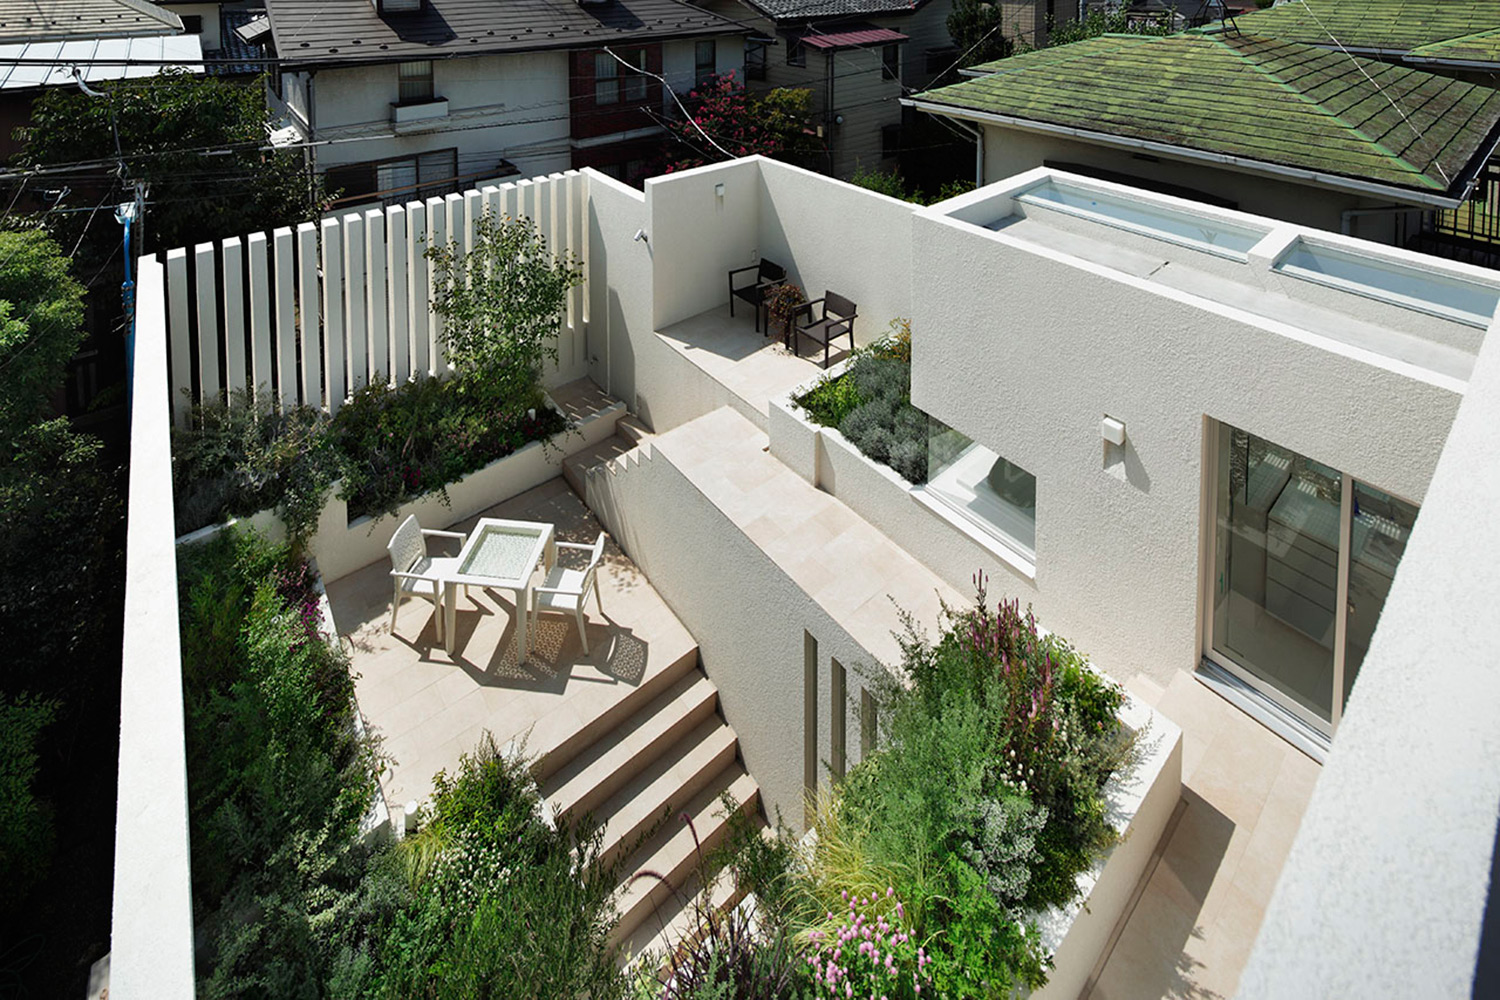 Courtyard. Several gardens of different levels are connected by stairs and continue, making rich space that is rich in variety. }